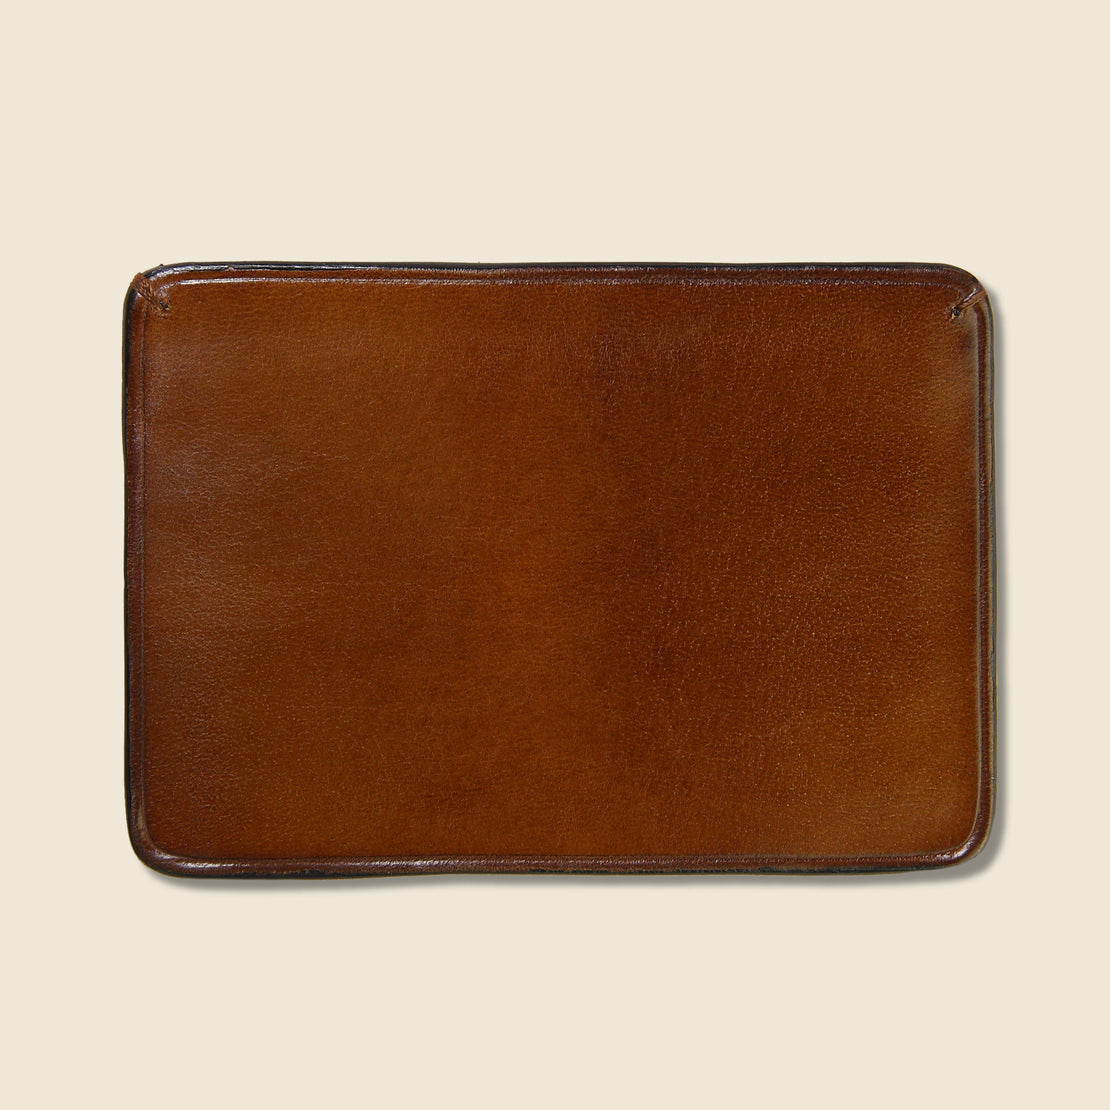 Credit Card Case - Dark Brown - Il Bussetto - STAG Provisions - Accessories - Wallets